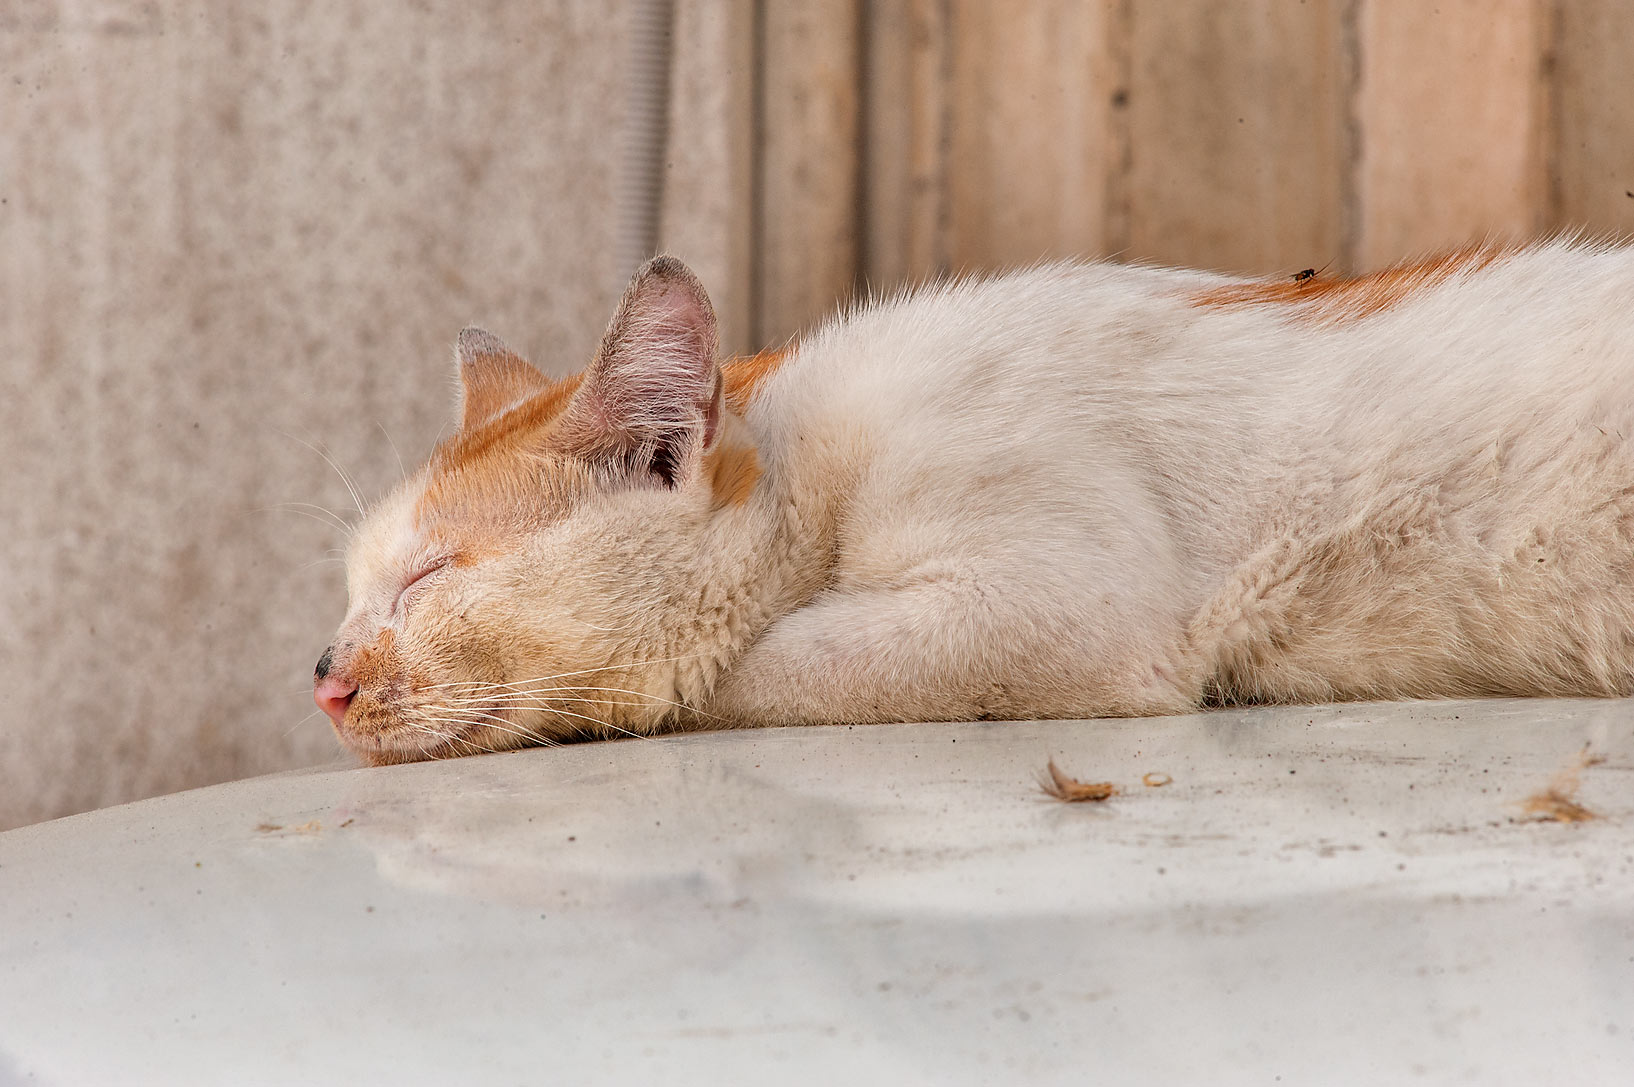 Sleeping cat near Abdullah Bin Thani St. in Musheirib (Msheireb) area. Doha, Qatar